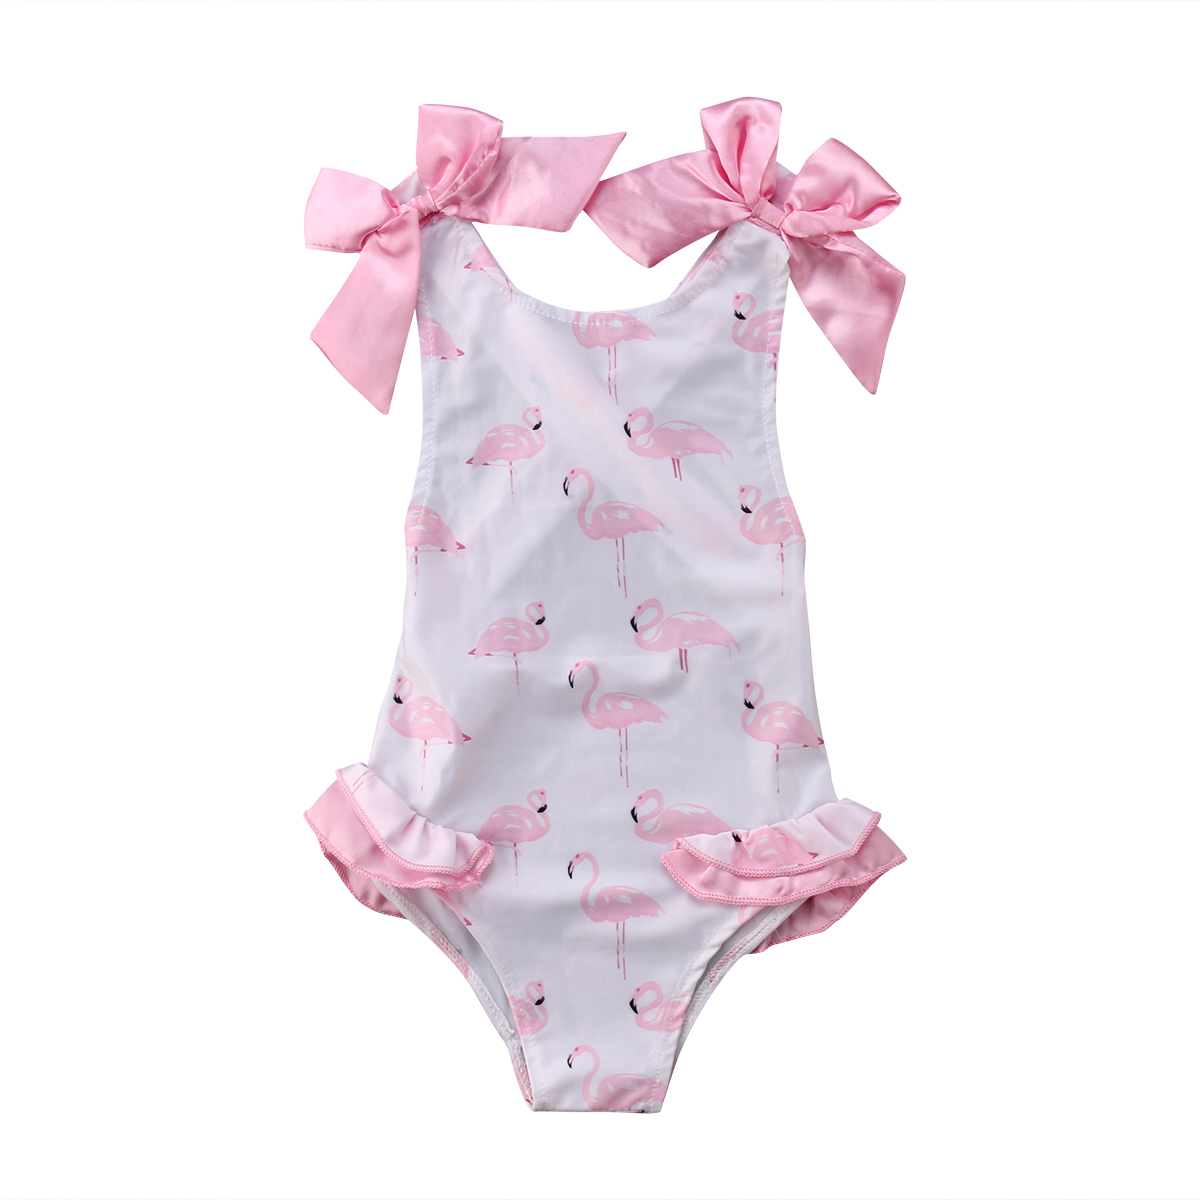 Cute Swimsuit Baby Girls Bowknot Back Cross Swimwear Flamingos One-Piece Bathing Suits Summer Tulle Tutu Swimming Costume